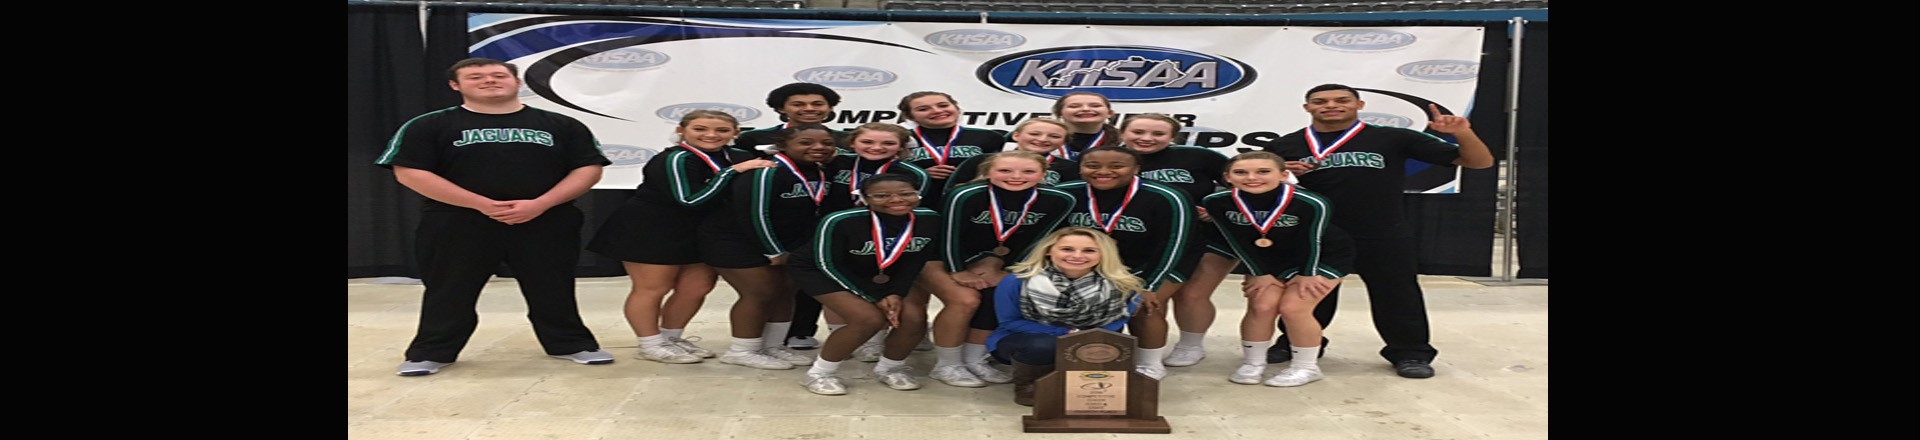 EJHS Cheerleaders 4th in State!  Congrats!